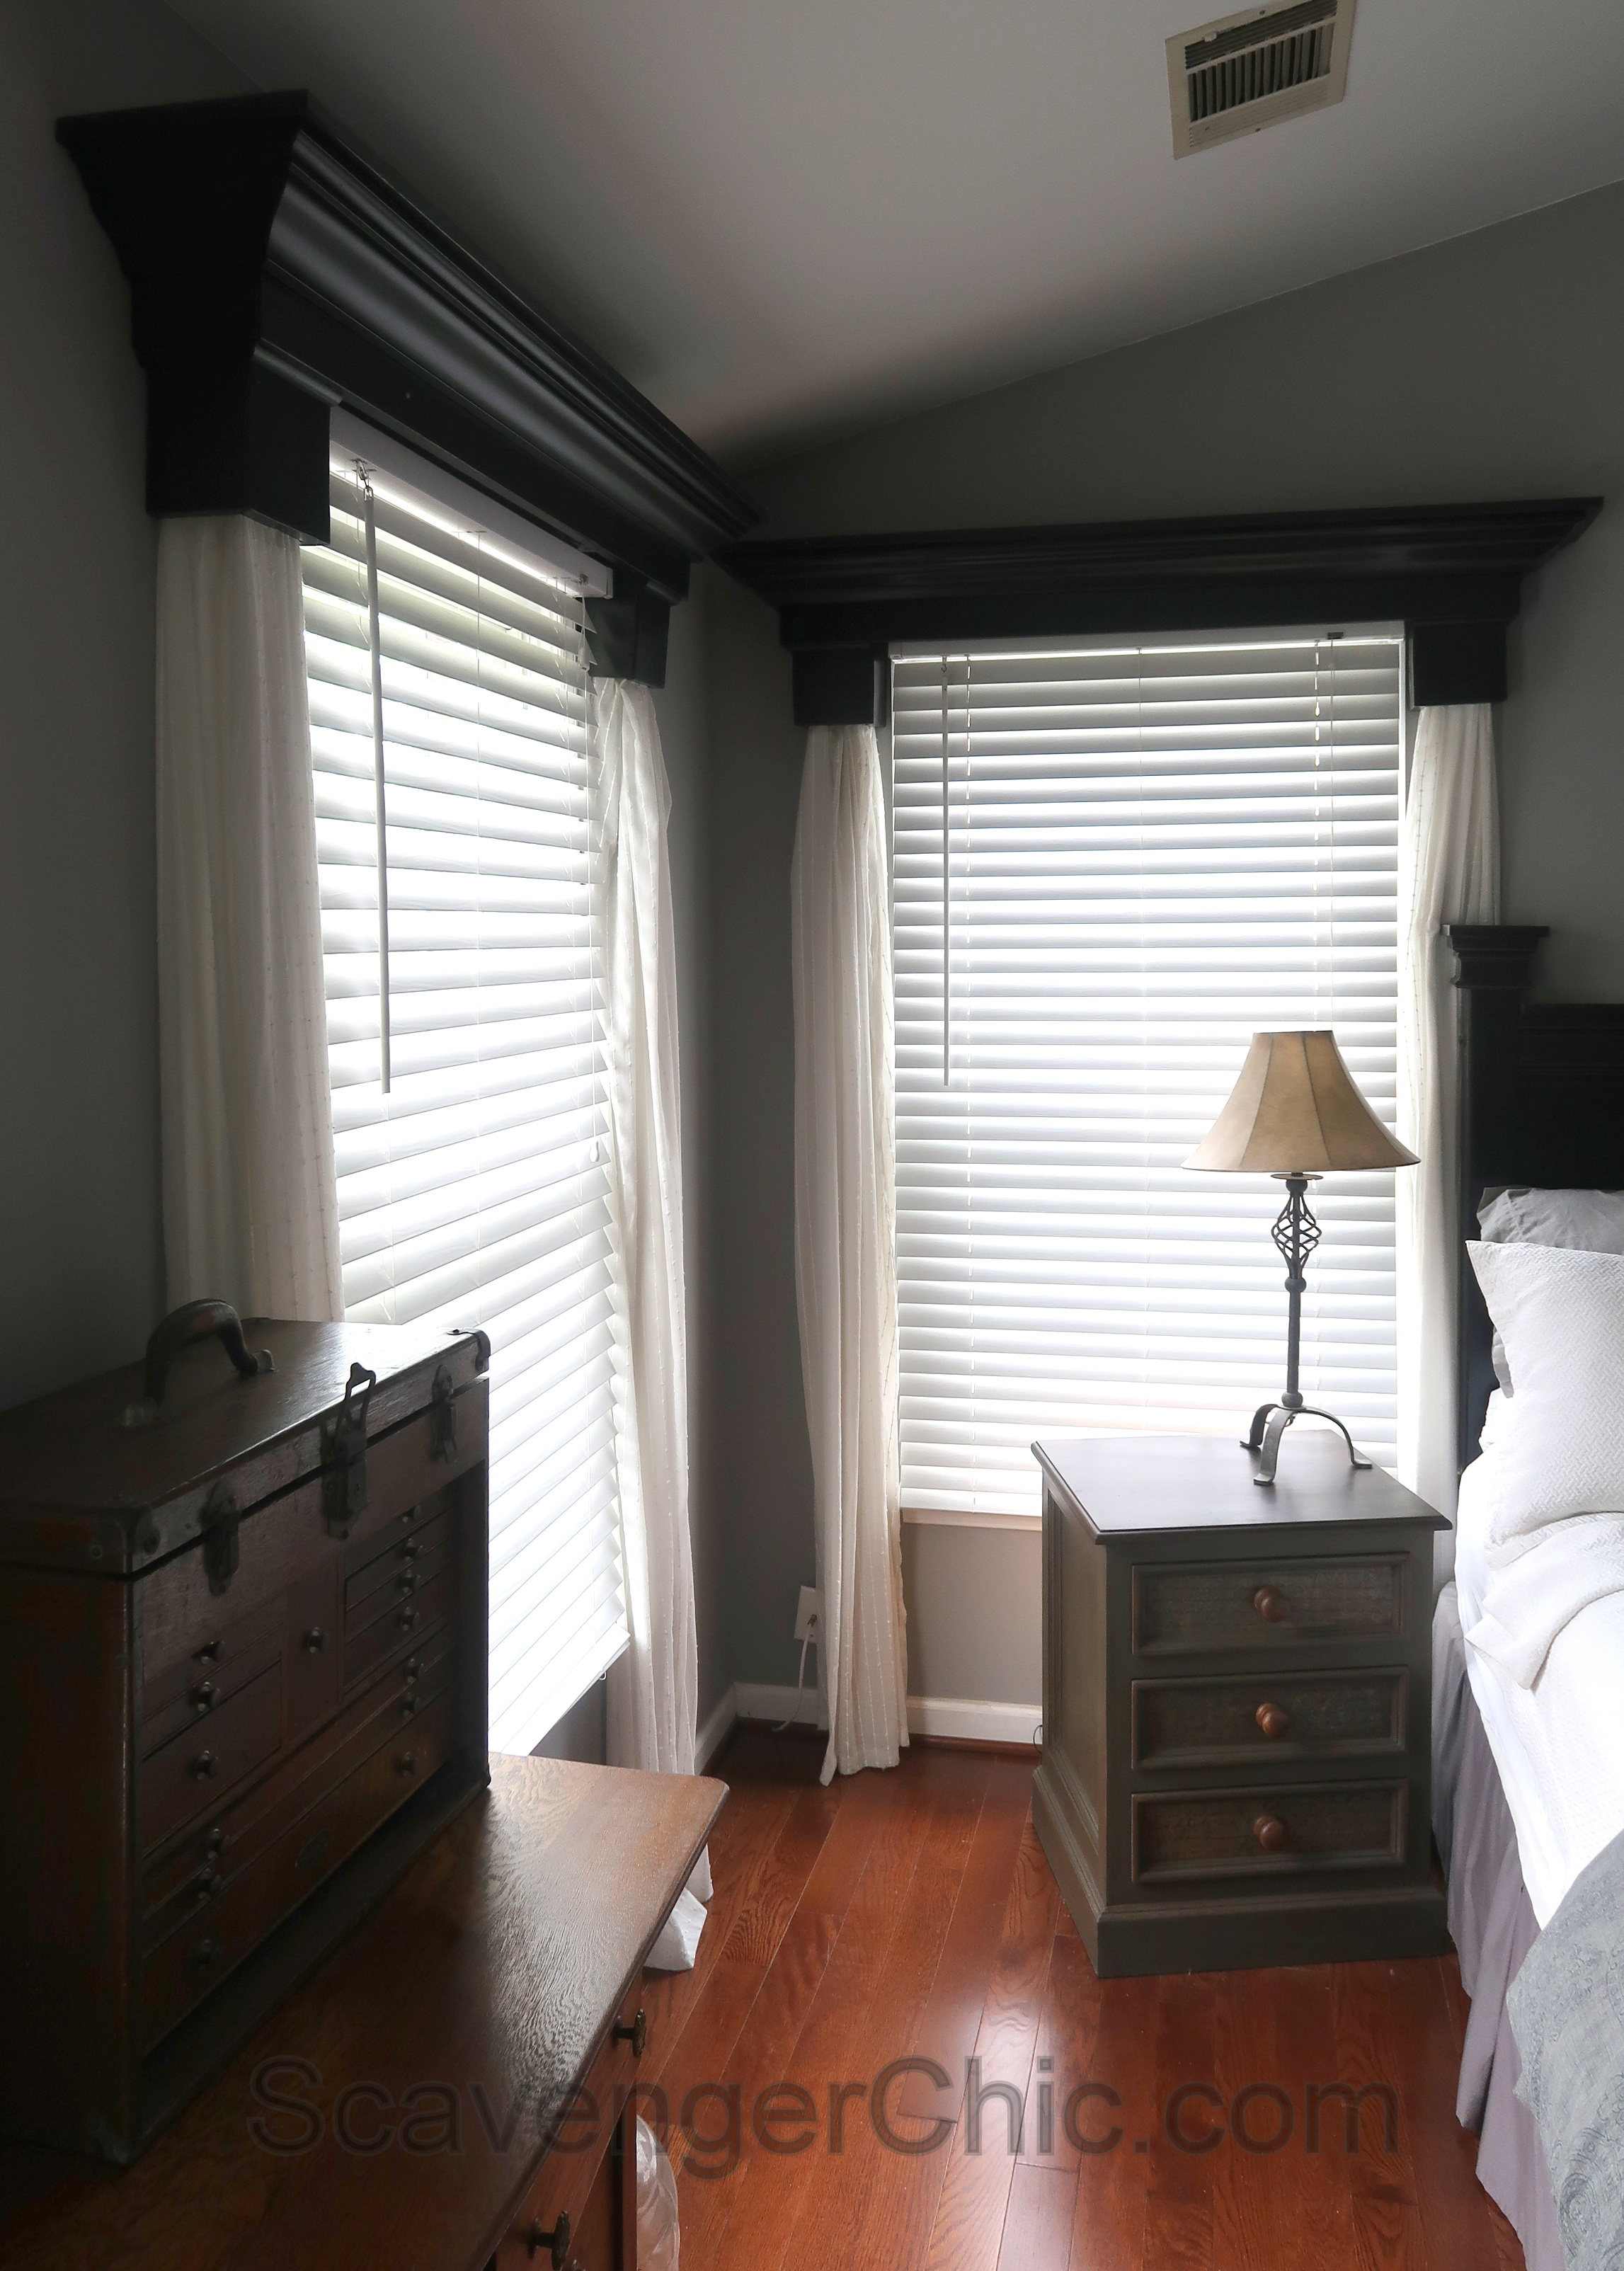 Diy Window Cornice With No Sew Curtains Scavenger Chic